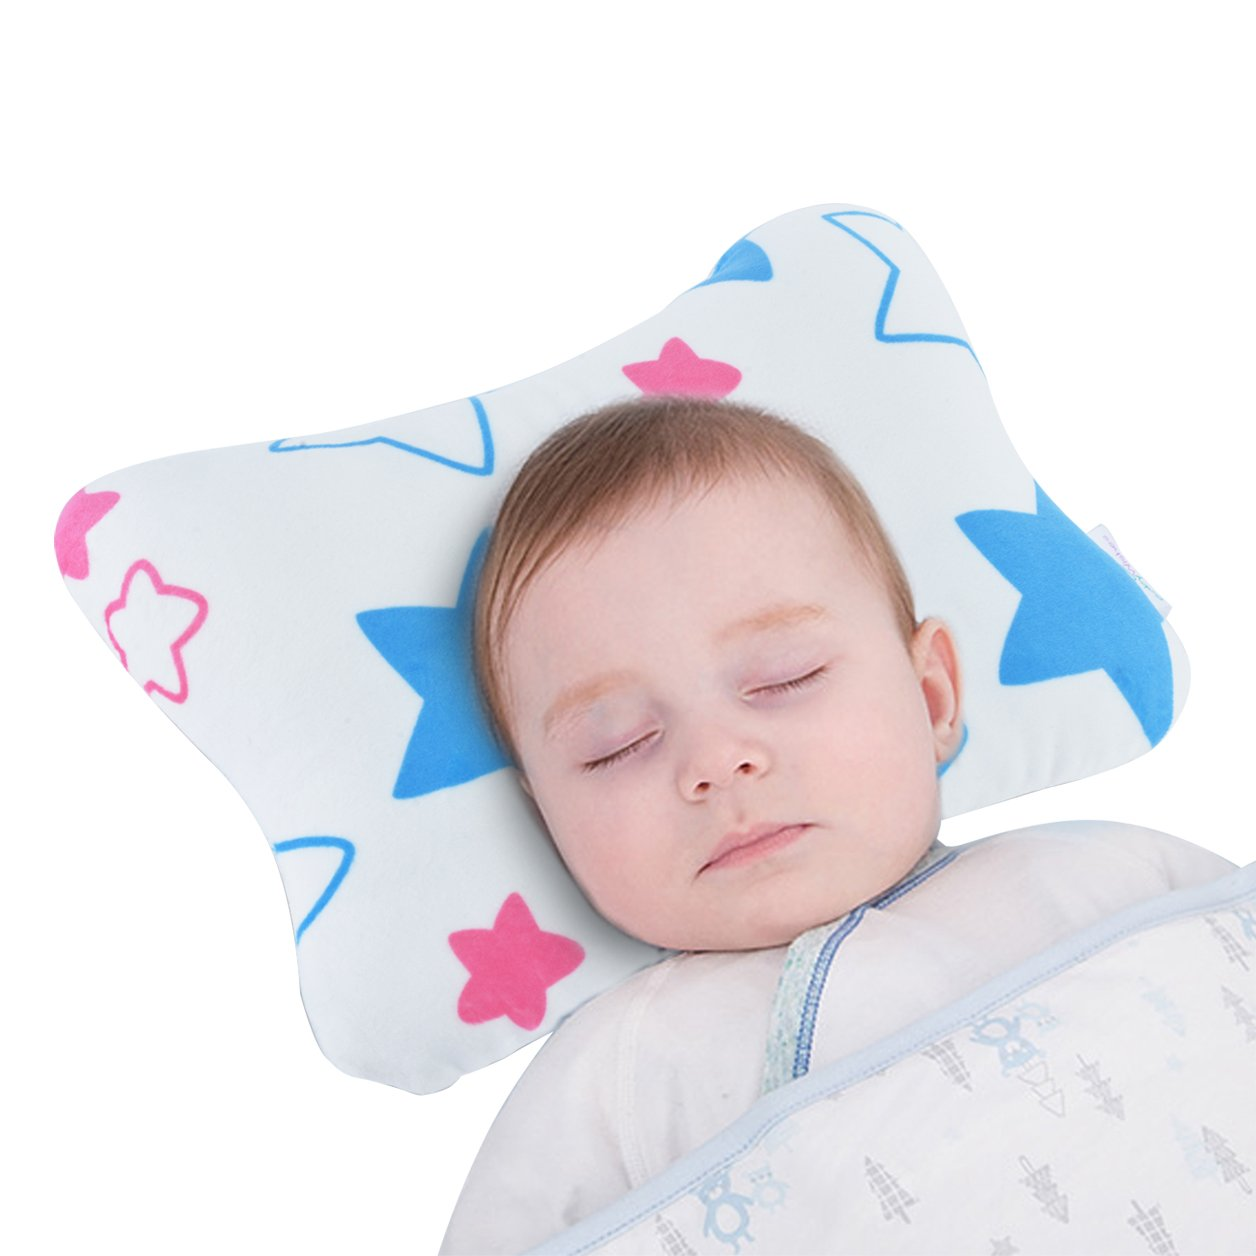 Baby Pillow Prevents Flat Head for Newborns by Baby Wishes | Age 0-3, Ultra-Soft, Breathable, 3D Air Mesh Cotton, Velvety Cover | Comes with Baby Face Towel & Ebook